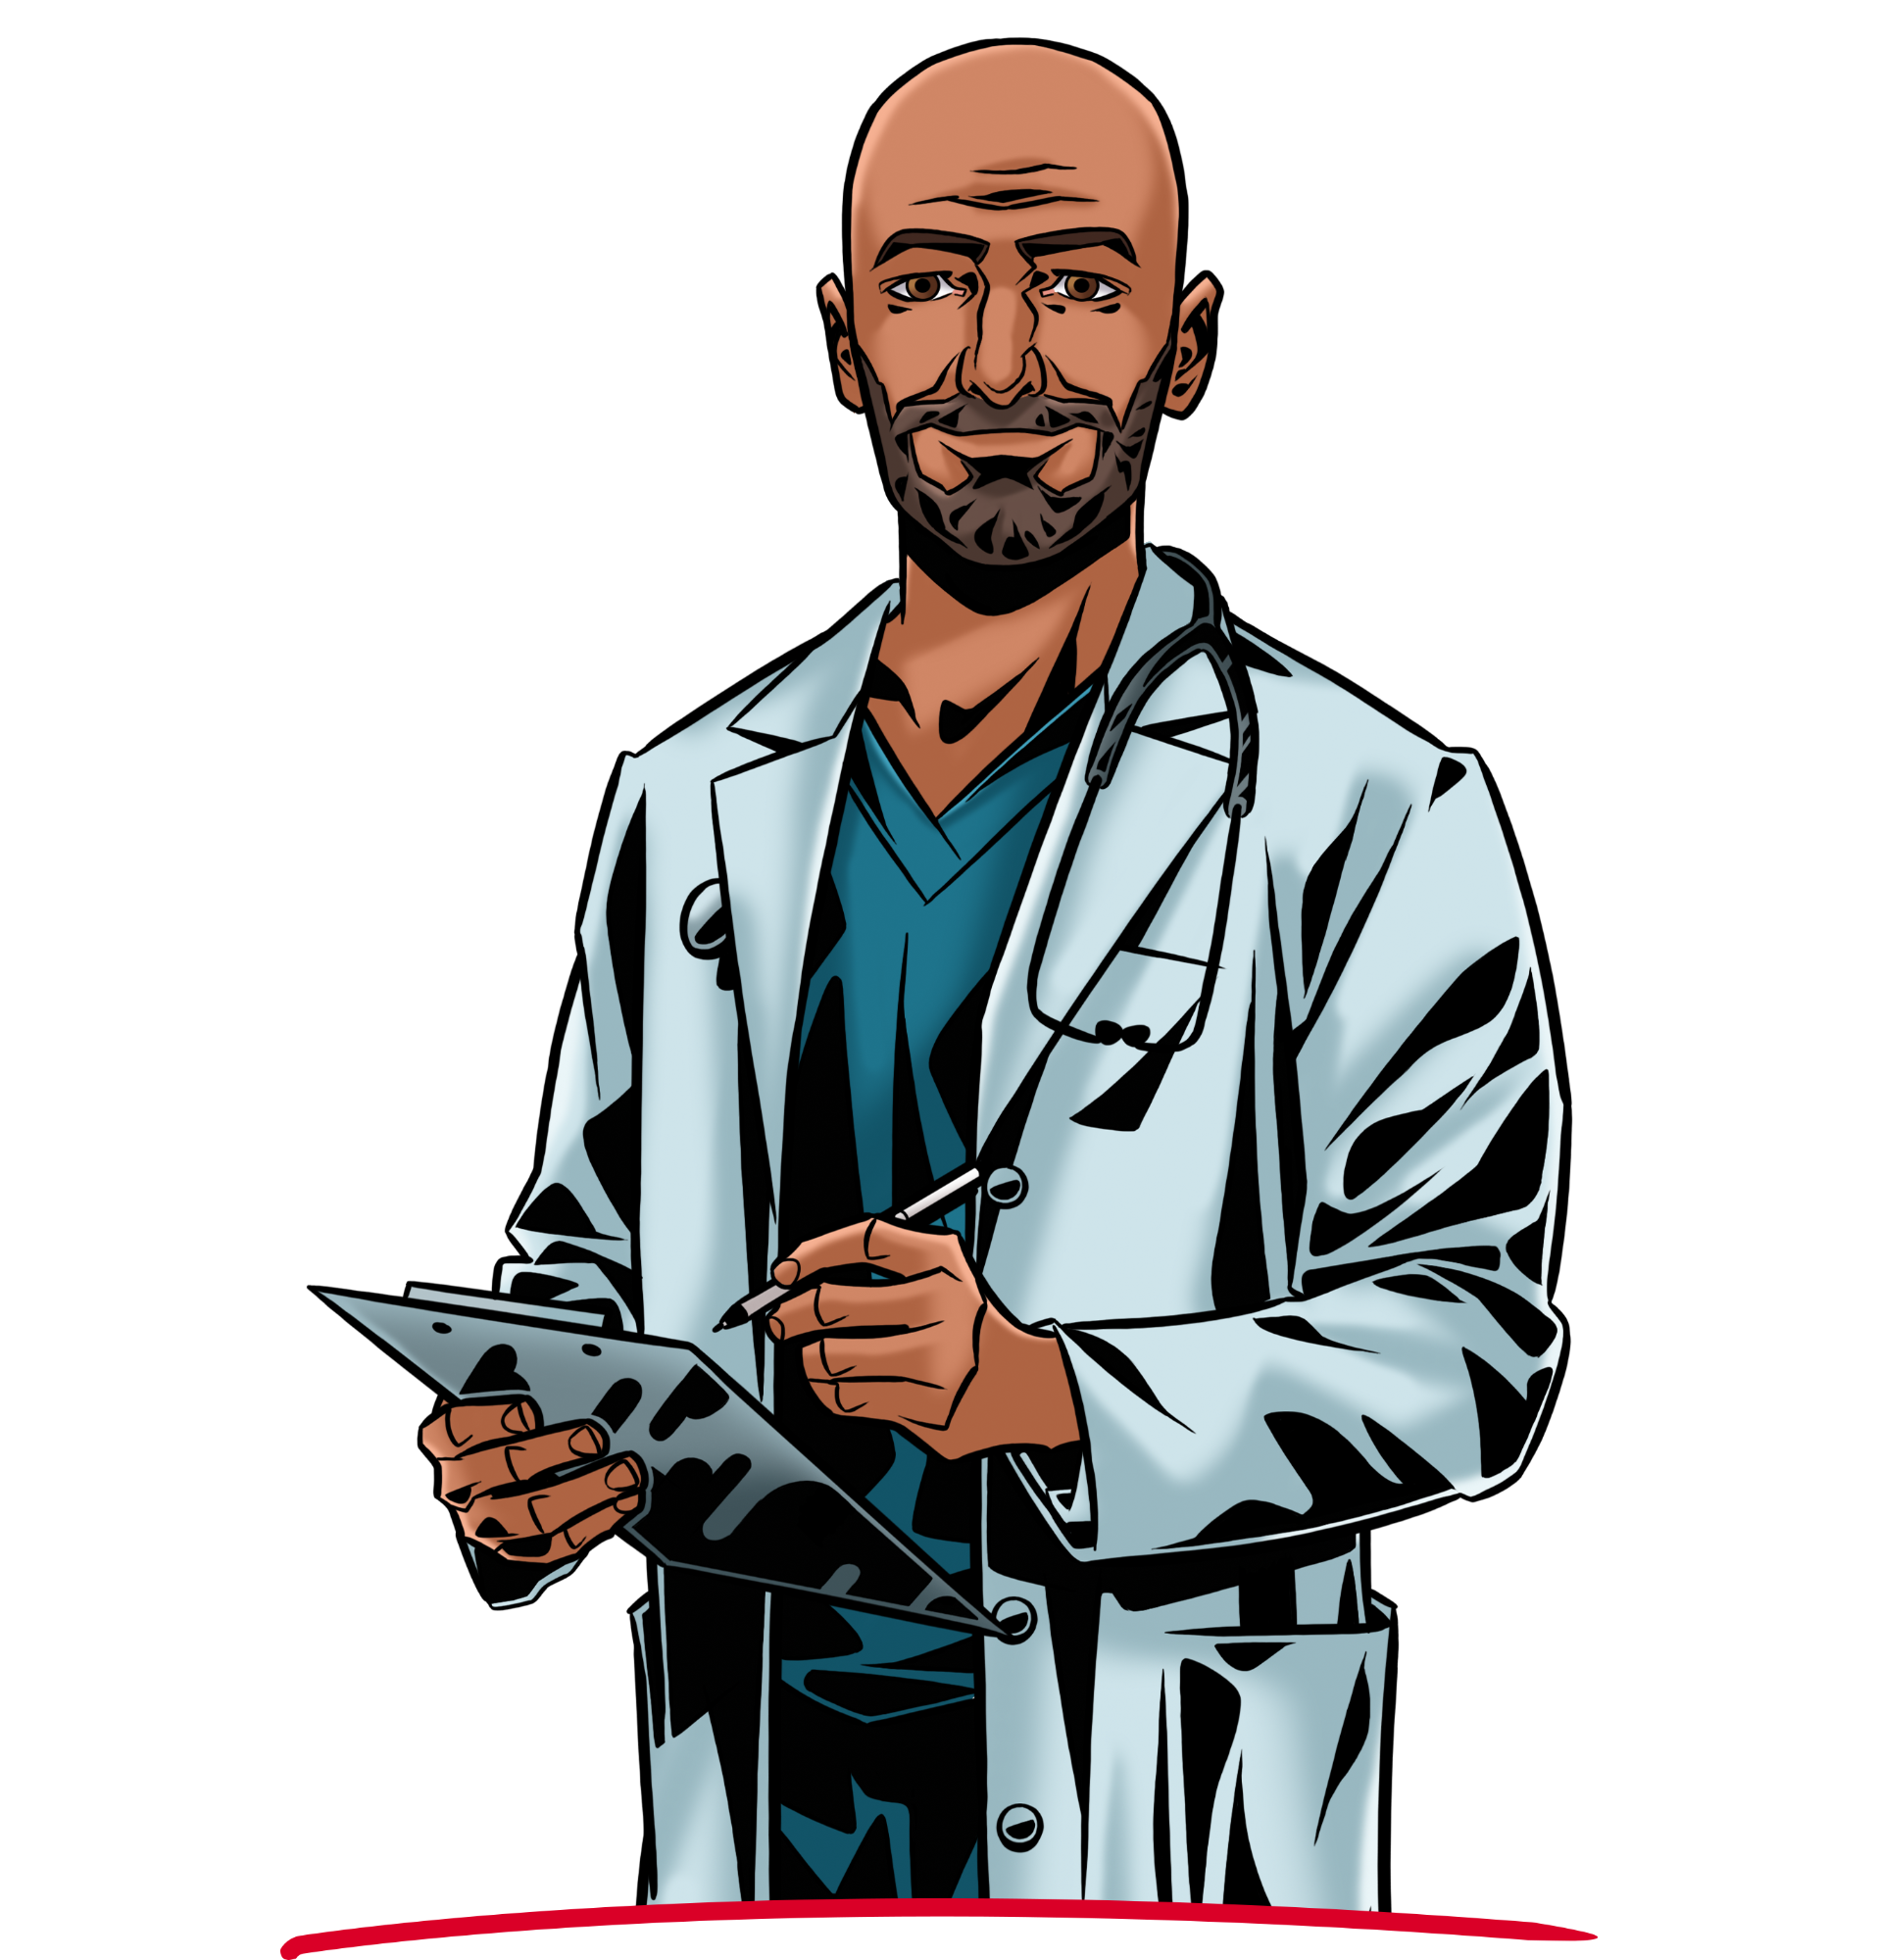 Dr. Daniel (Physician)